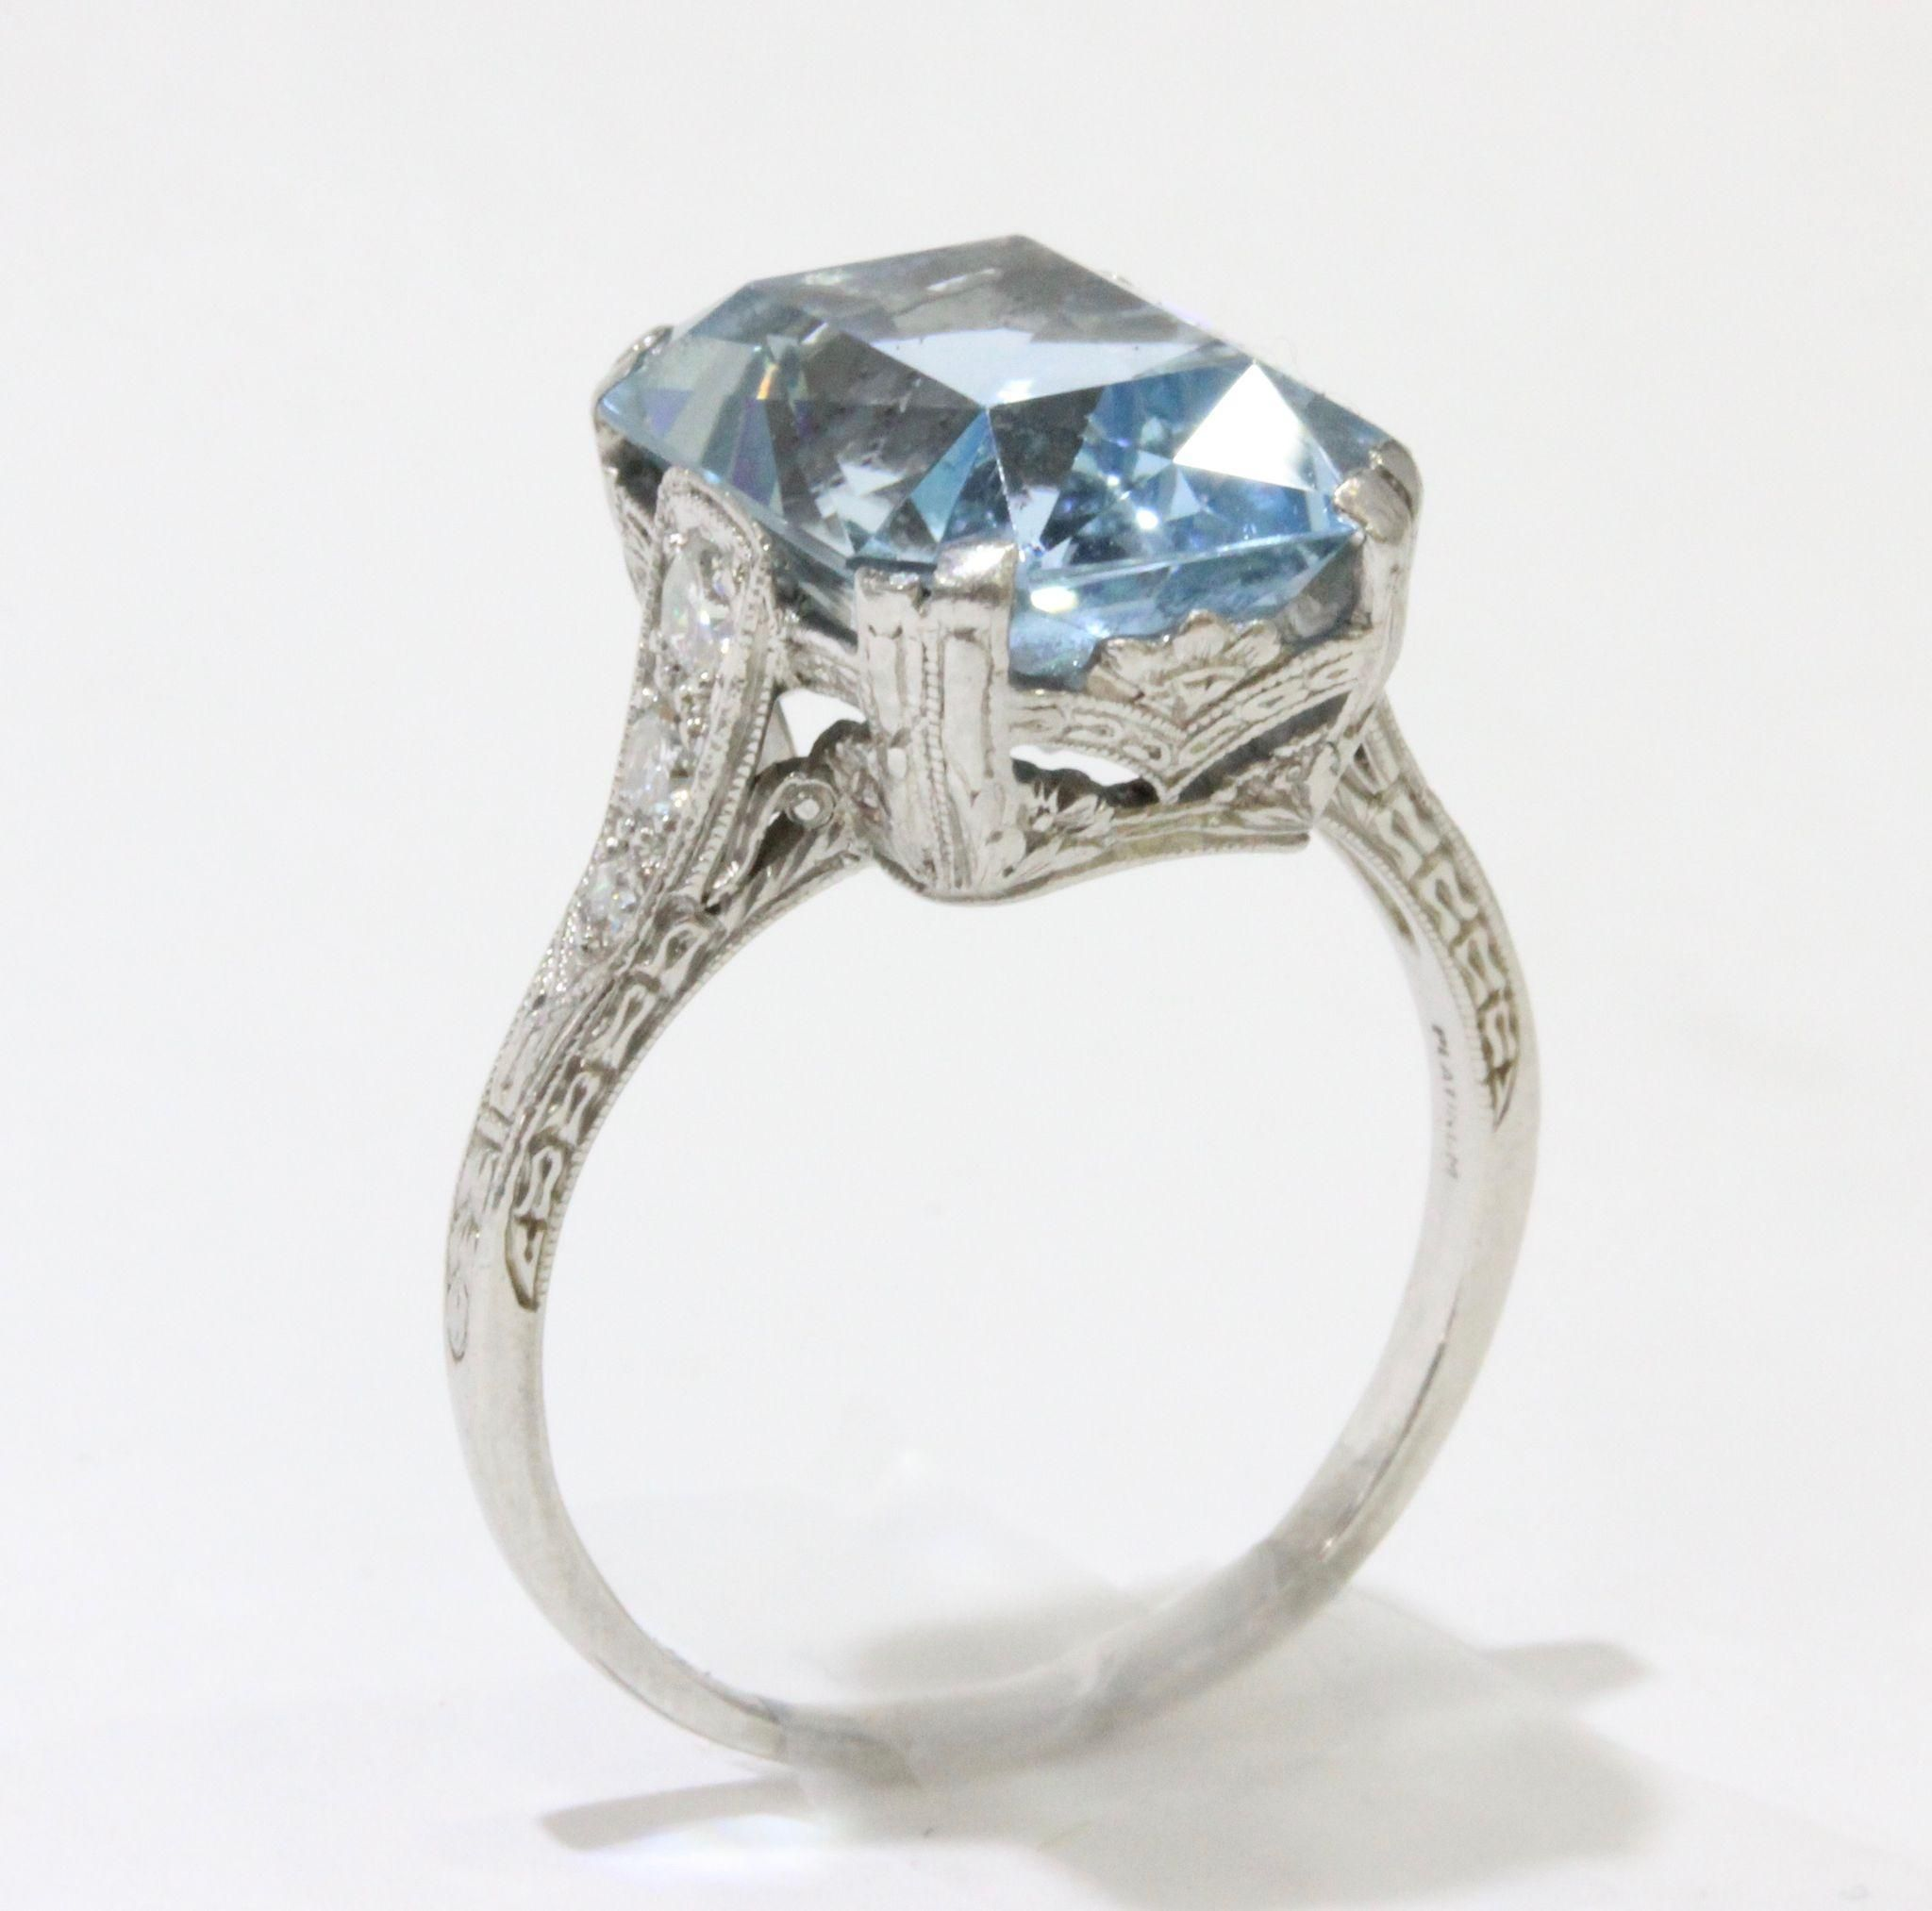 products sun of hidden gems aquamarine with the gardens ring birthstone jewellery jewelry